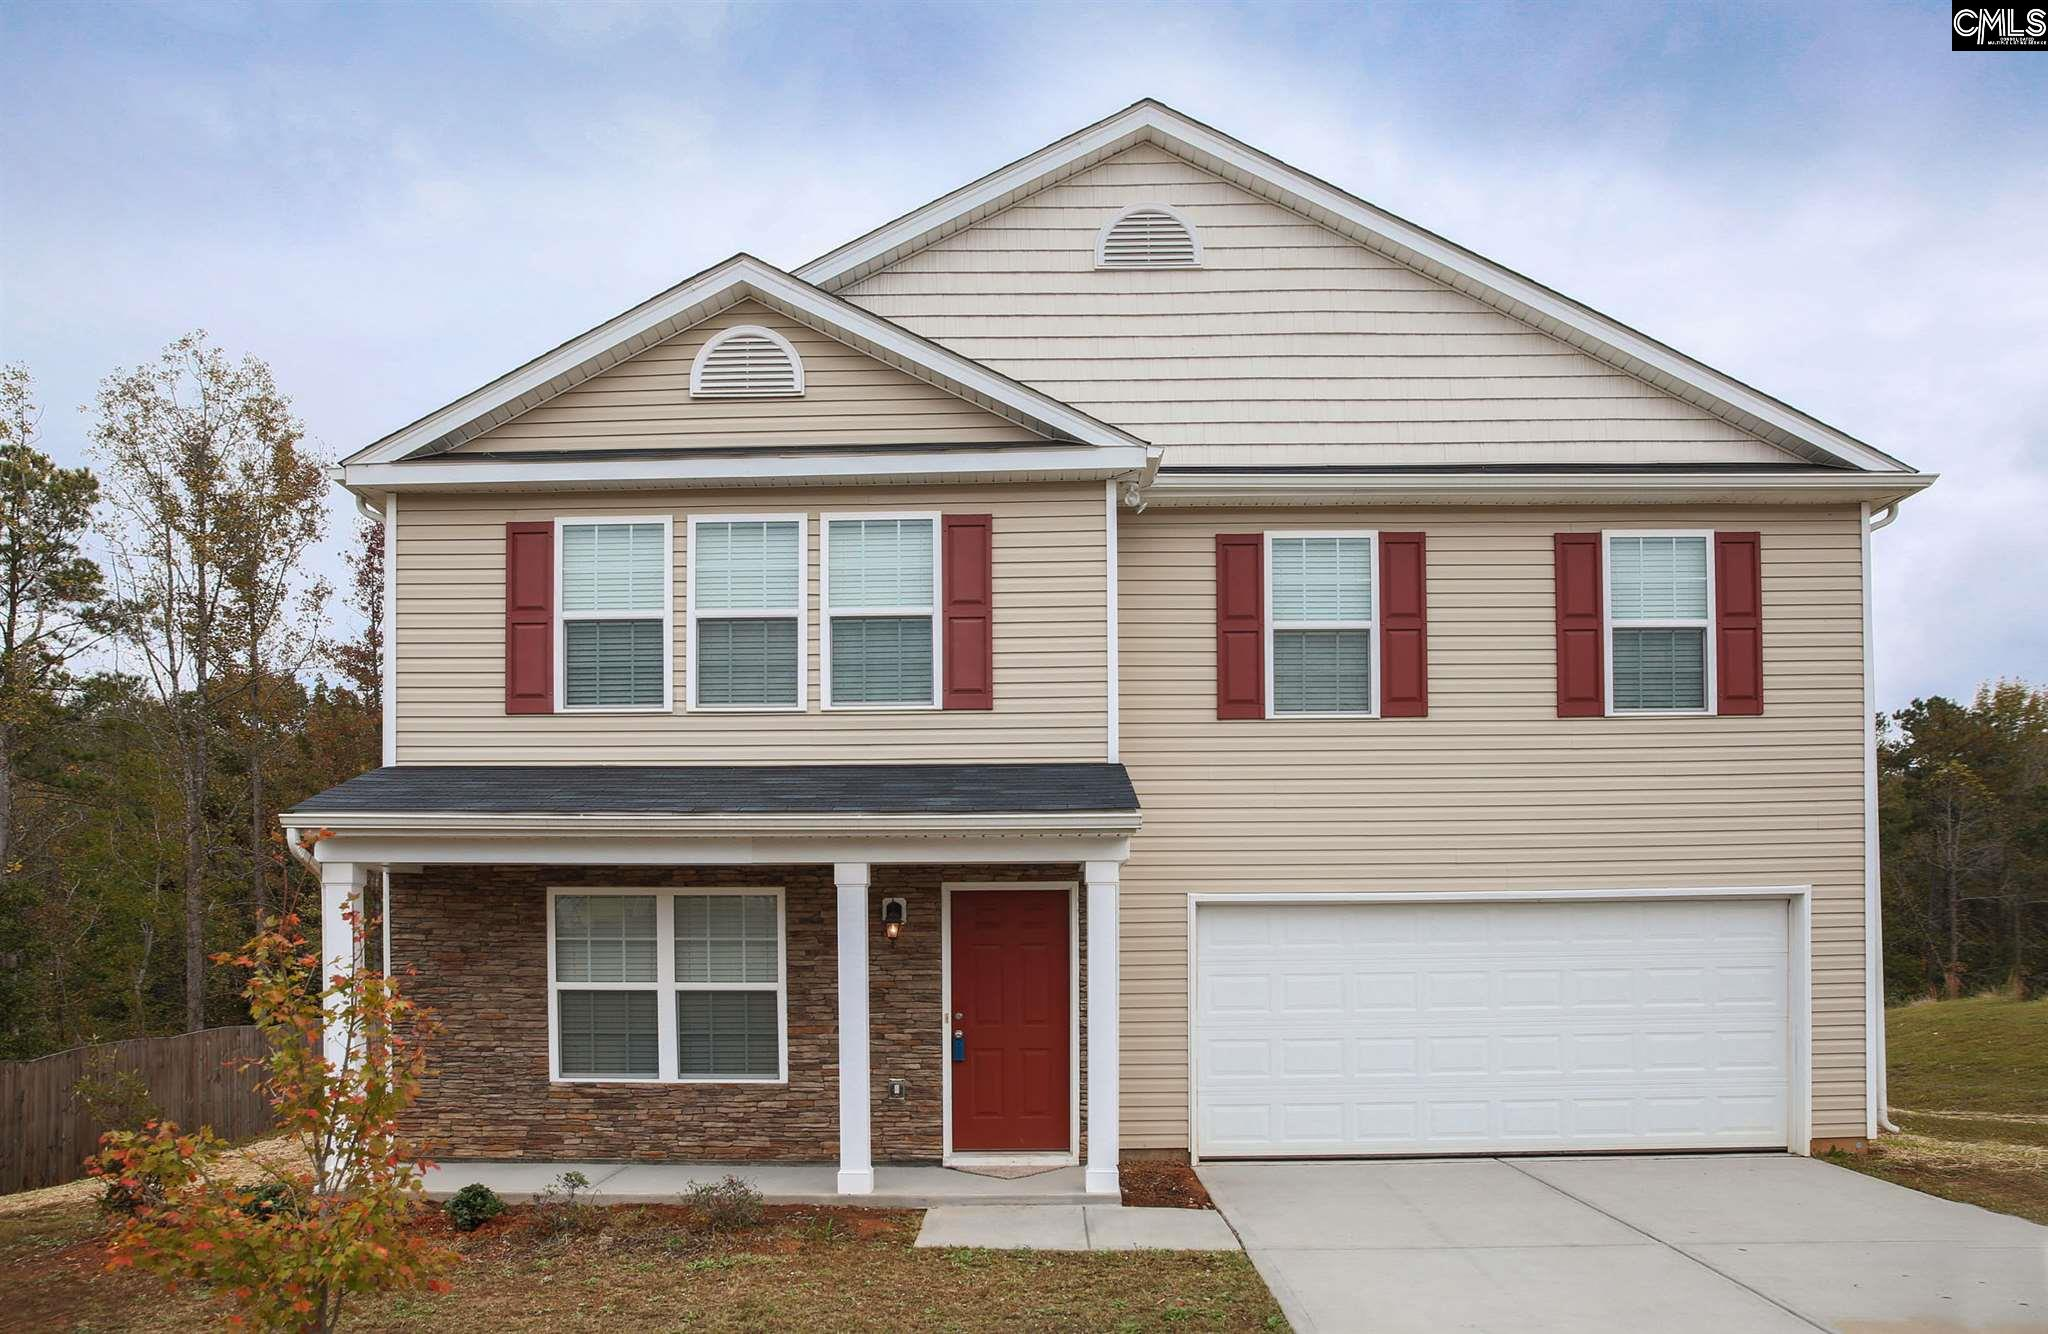 116 Feathersite Lexington, SC 29072